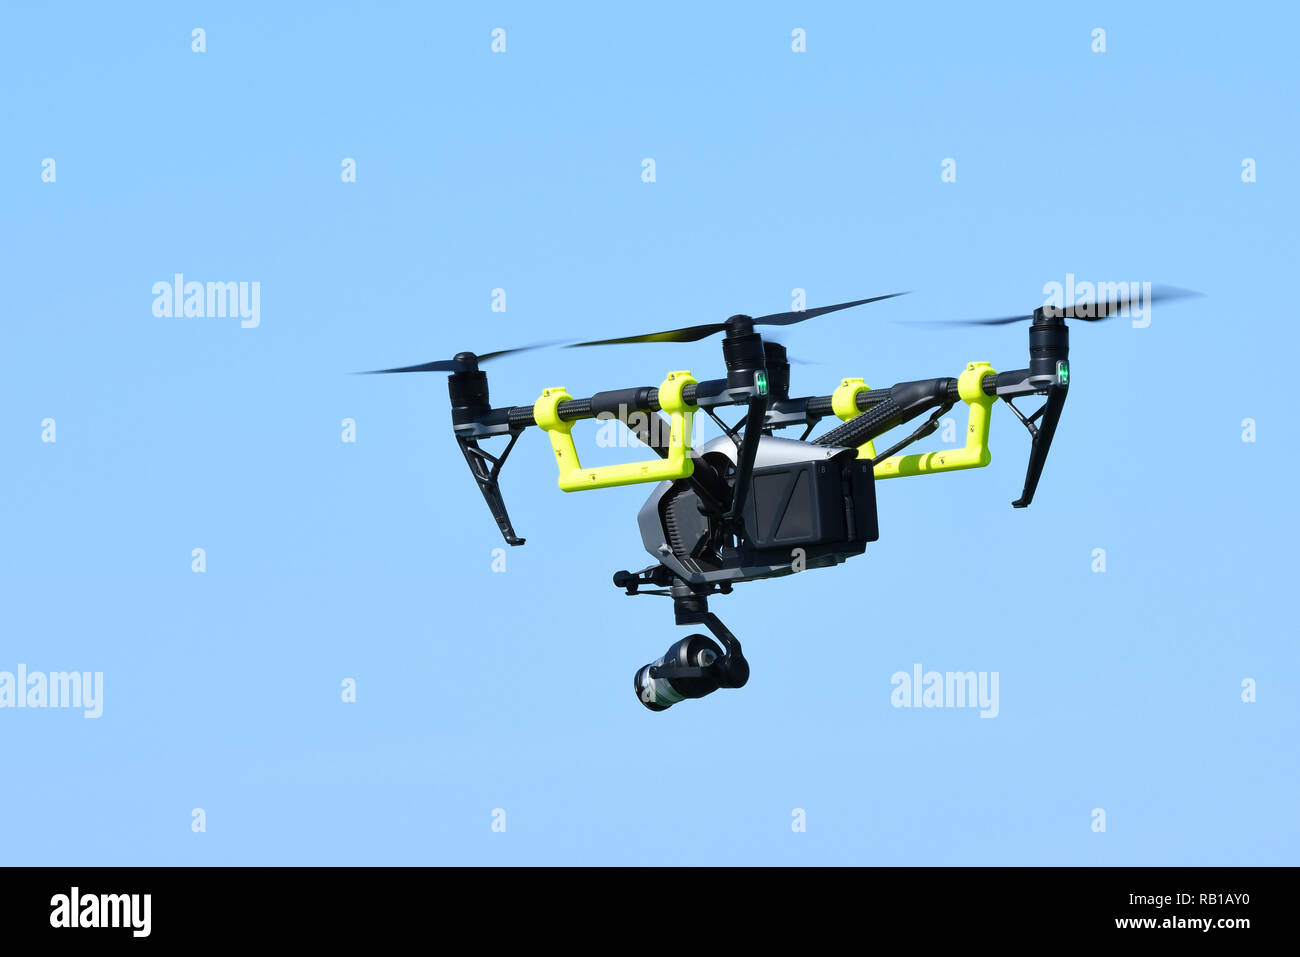 DJI Inspire 2 Quadcopter, a drone fitted with video camera in the sky. - Stock Image